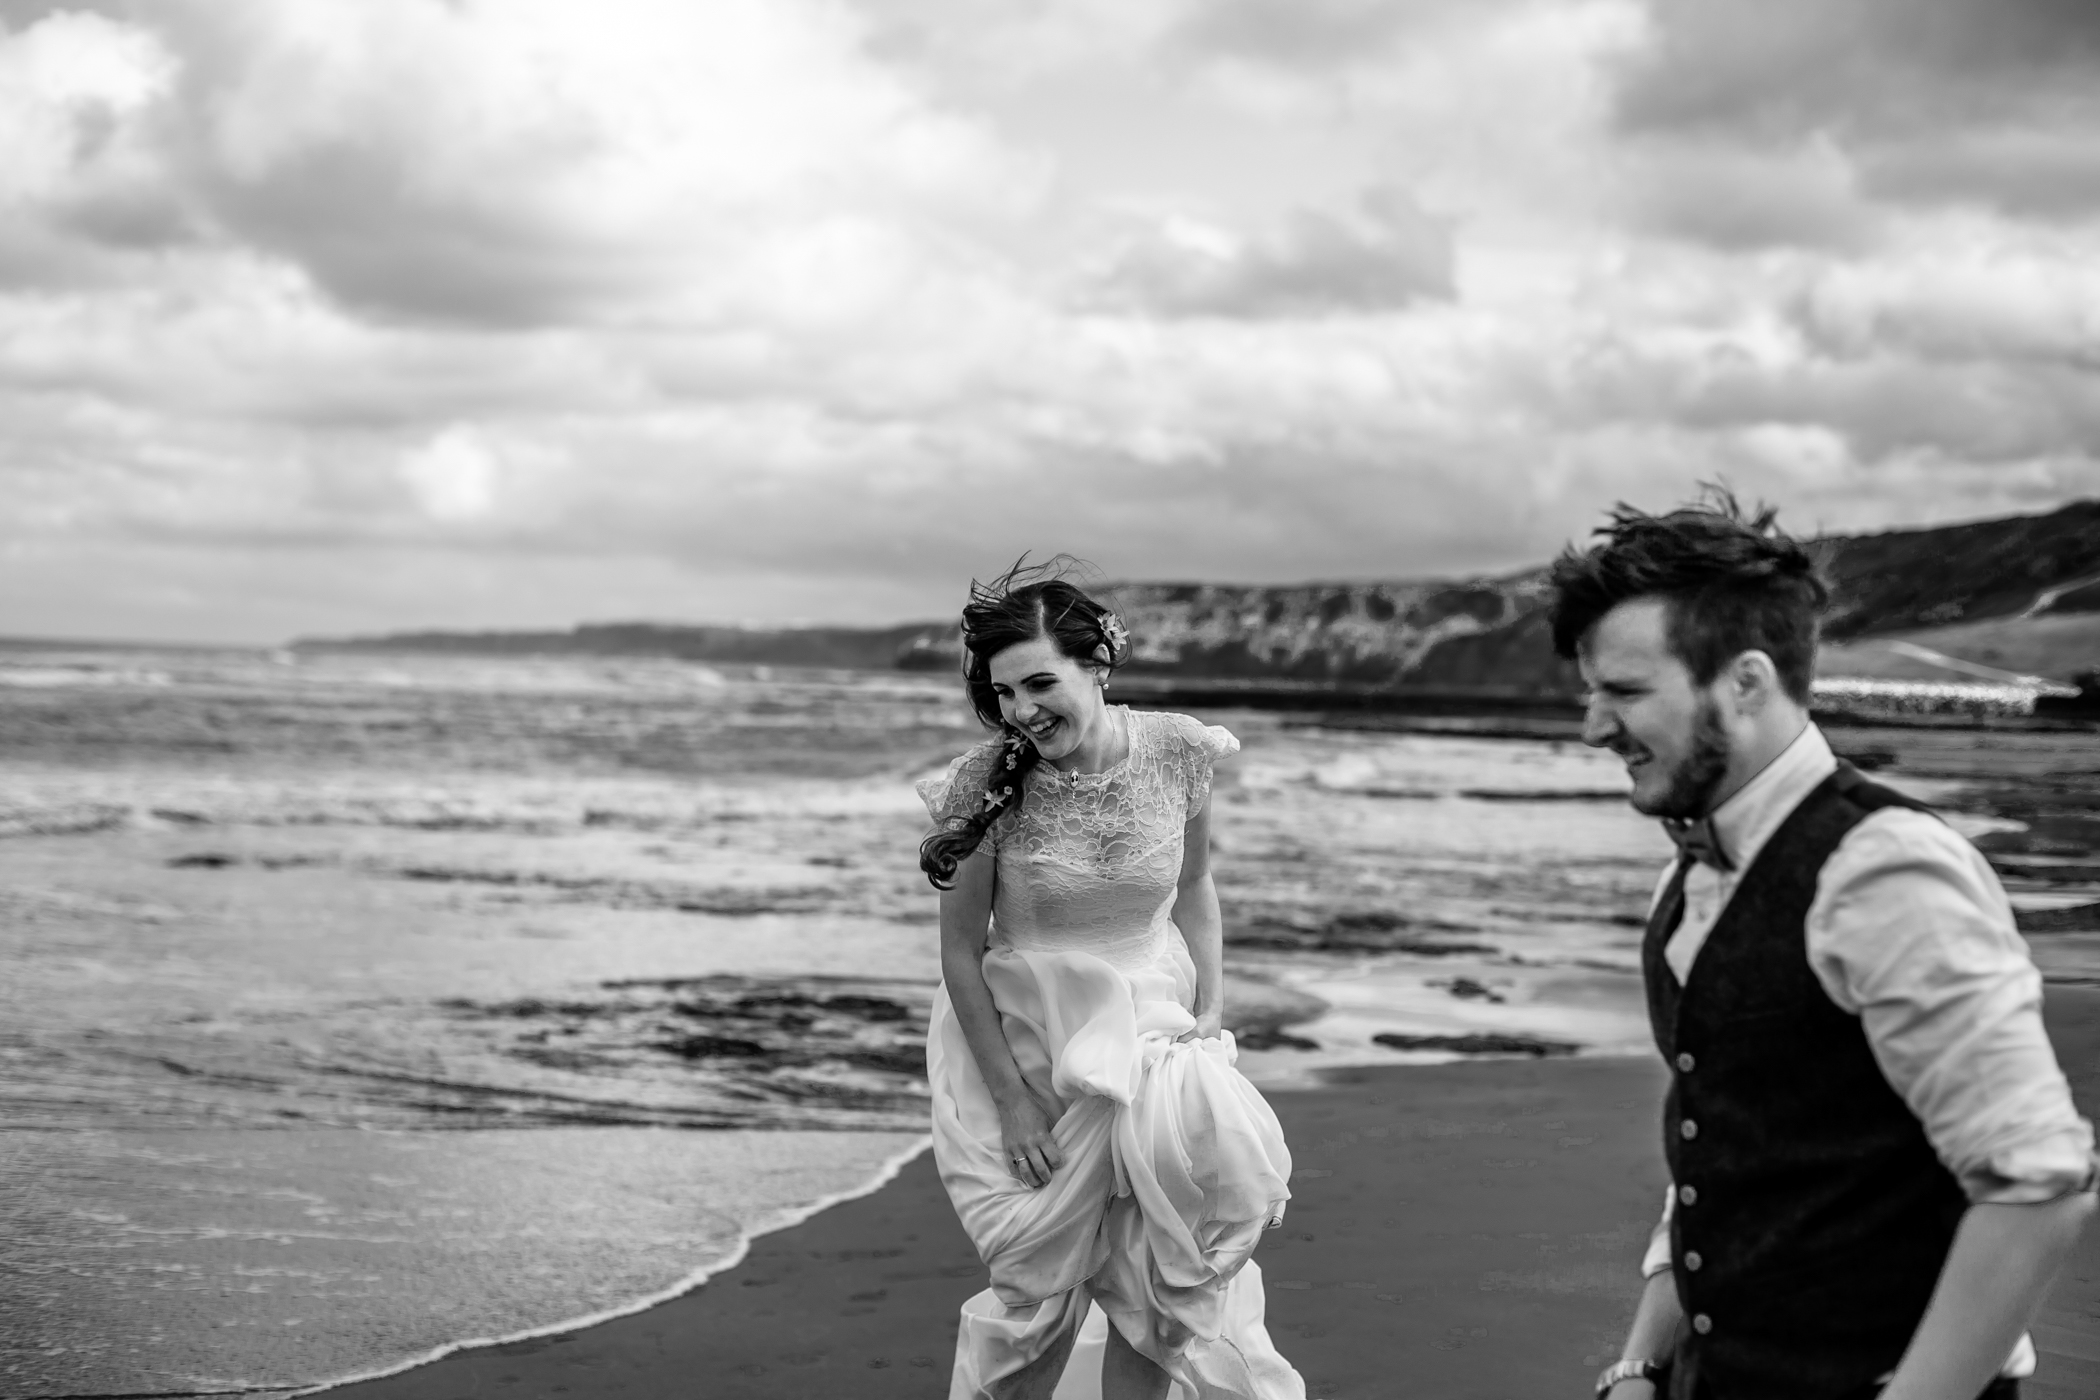 sansom photography beach wedding photography charlotte & mike-33